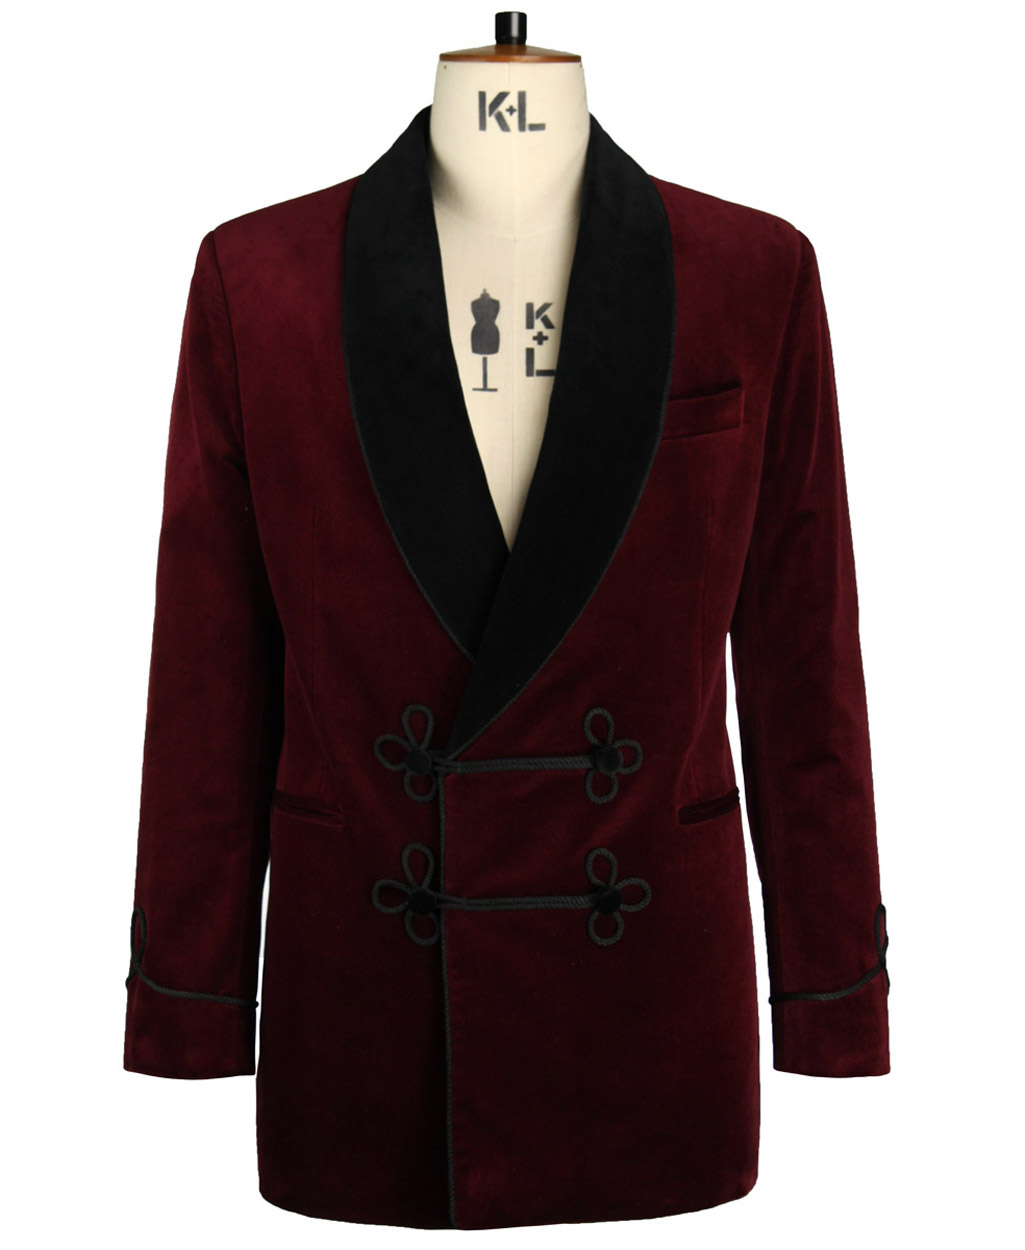 We offer the wide varities of Smoking jacket for men, Smoking jacket, Mens smoking jacket, fashion jackets for mens and more. For more details visit us today.